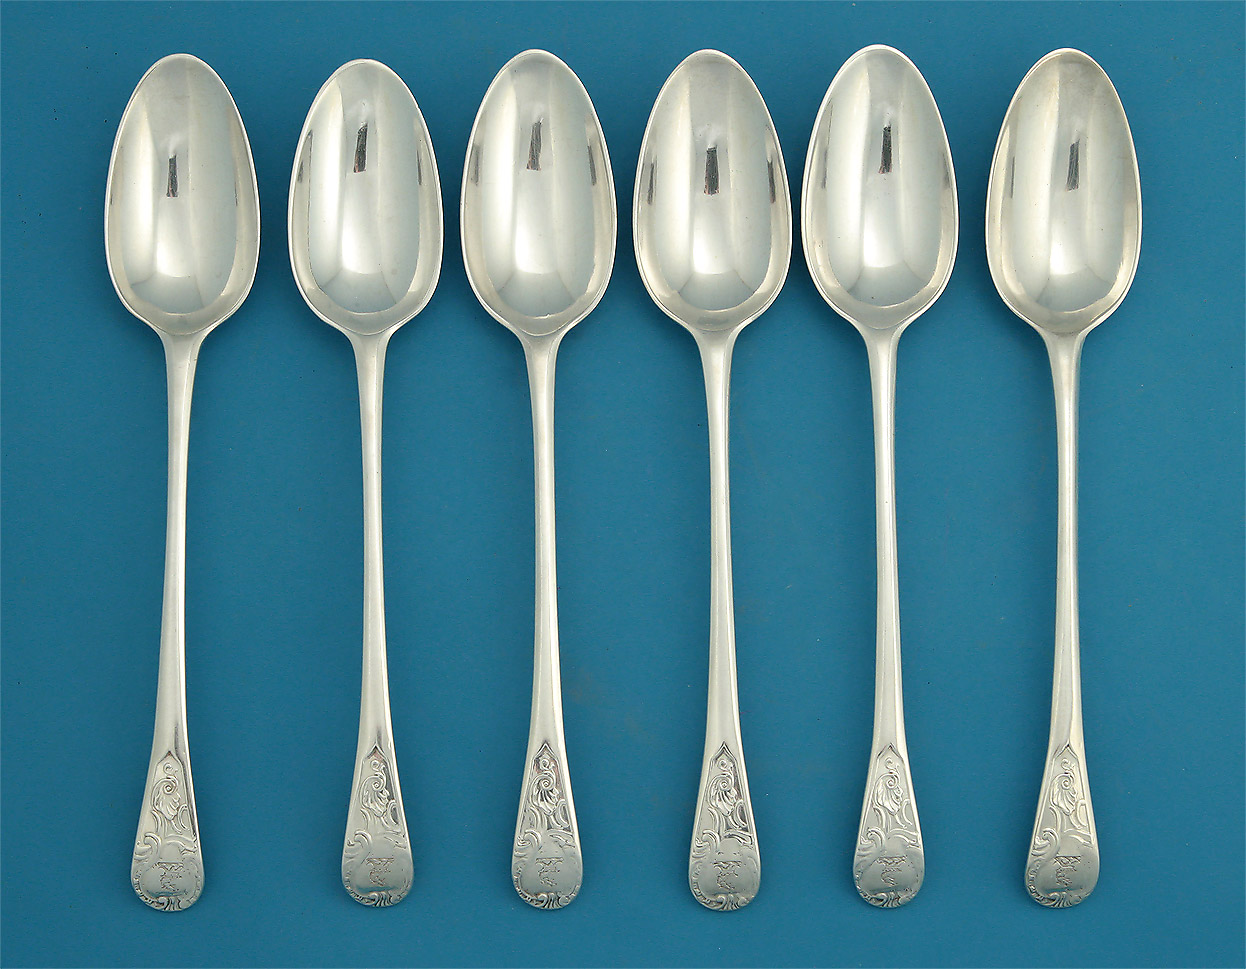 The Patient Patient: The cost of emotions on our spoons